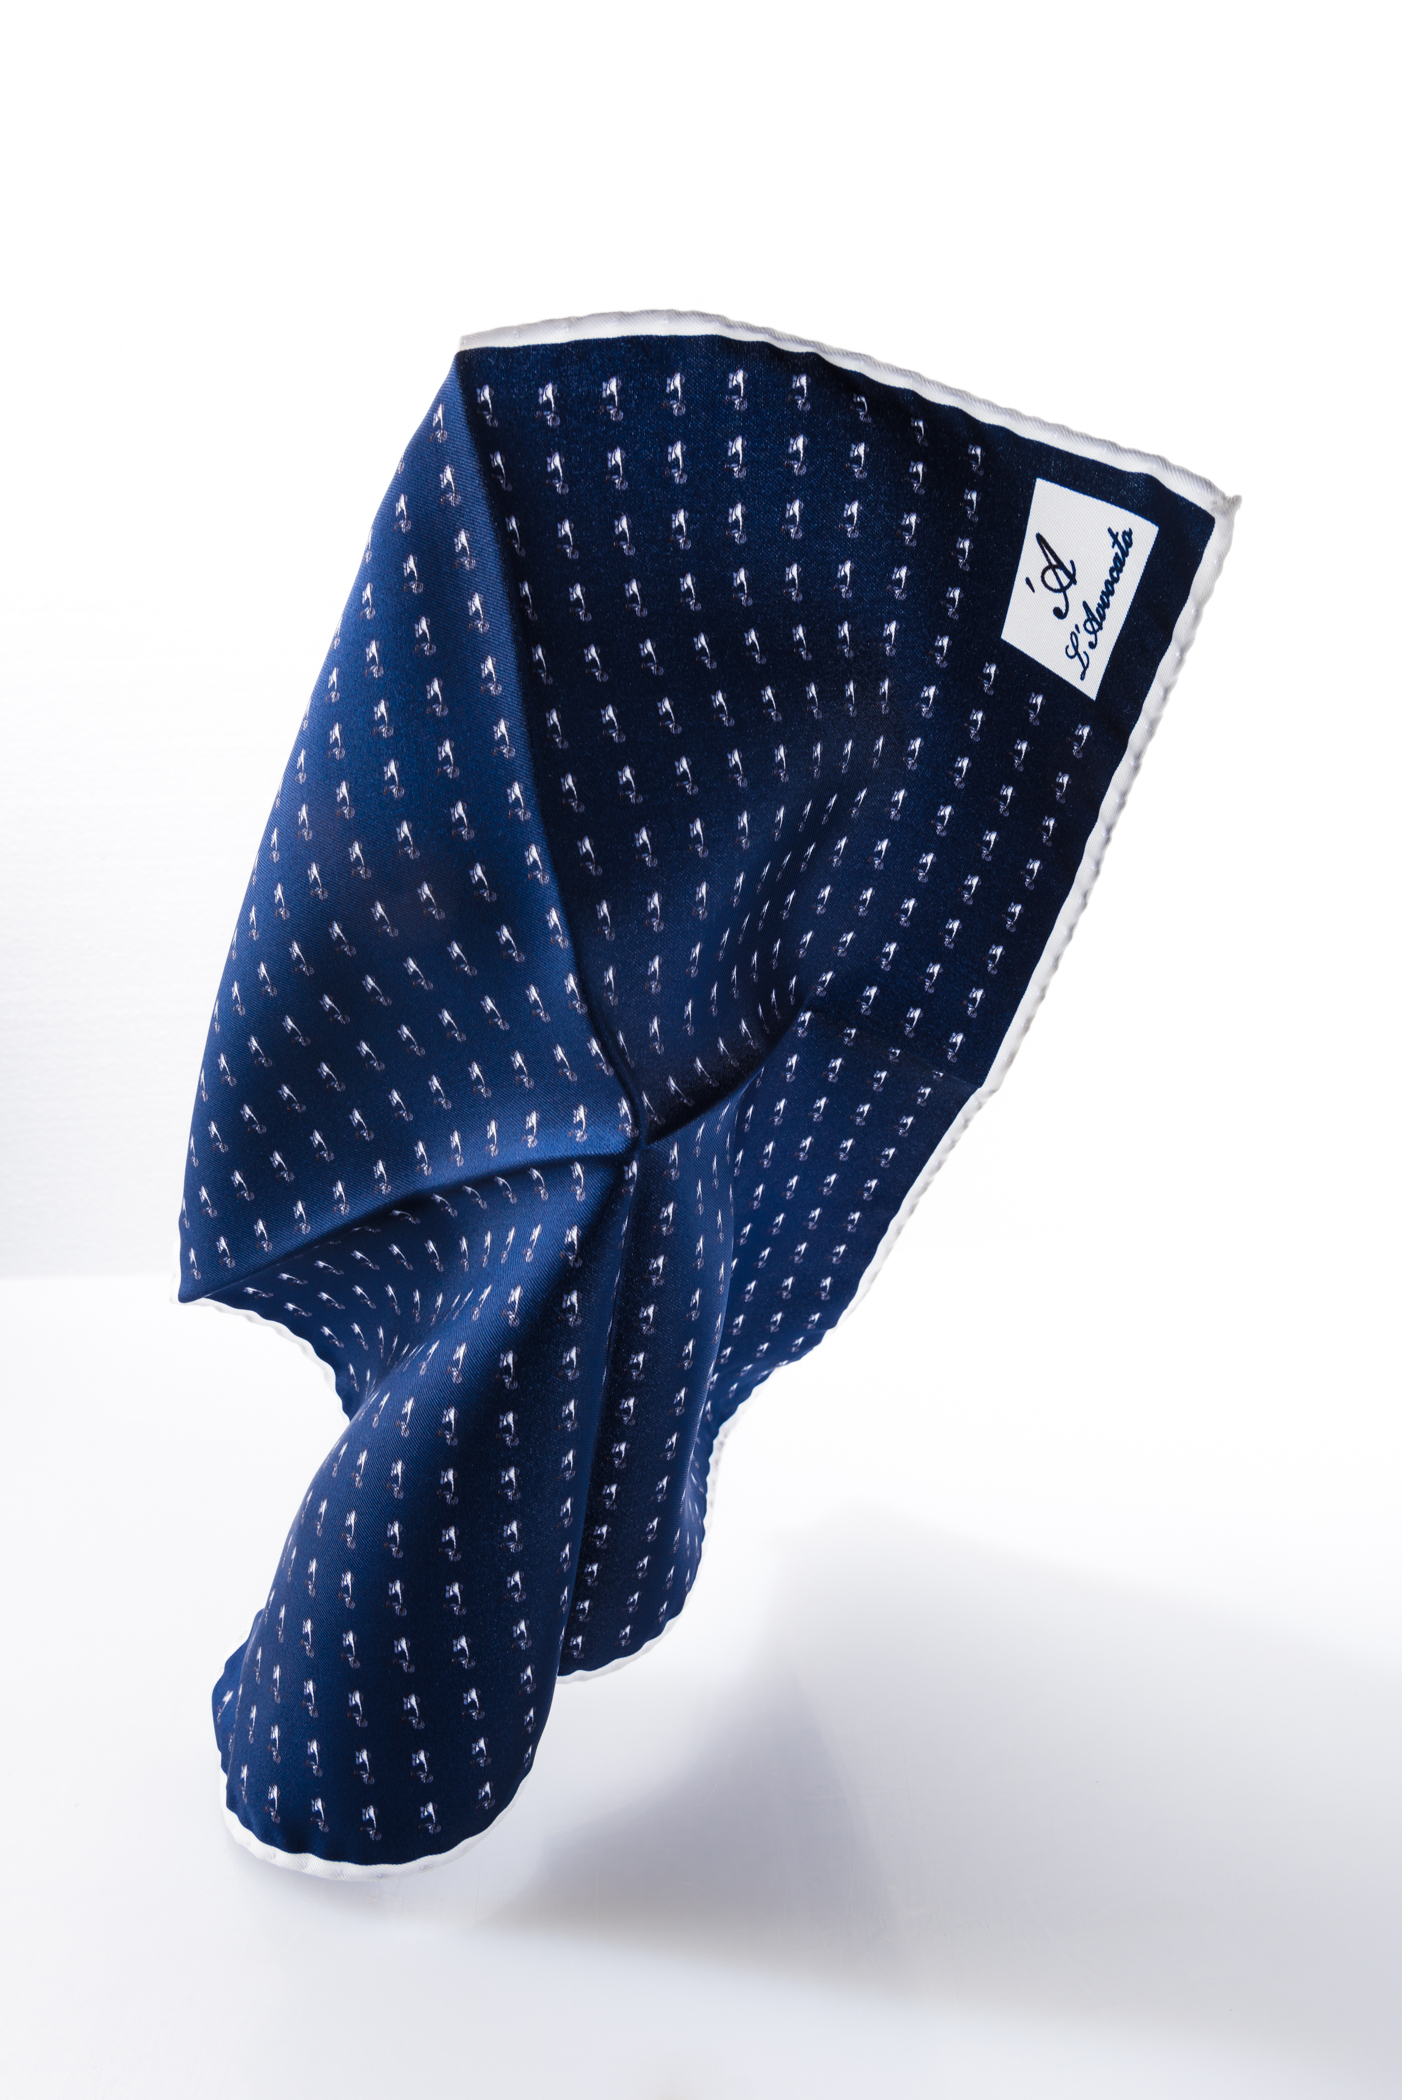 Pocket square MIRAFIORI- LAMBRETTA